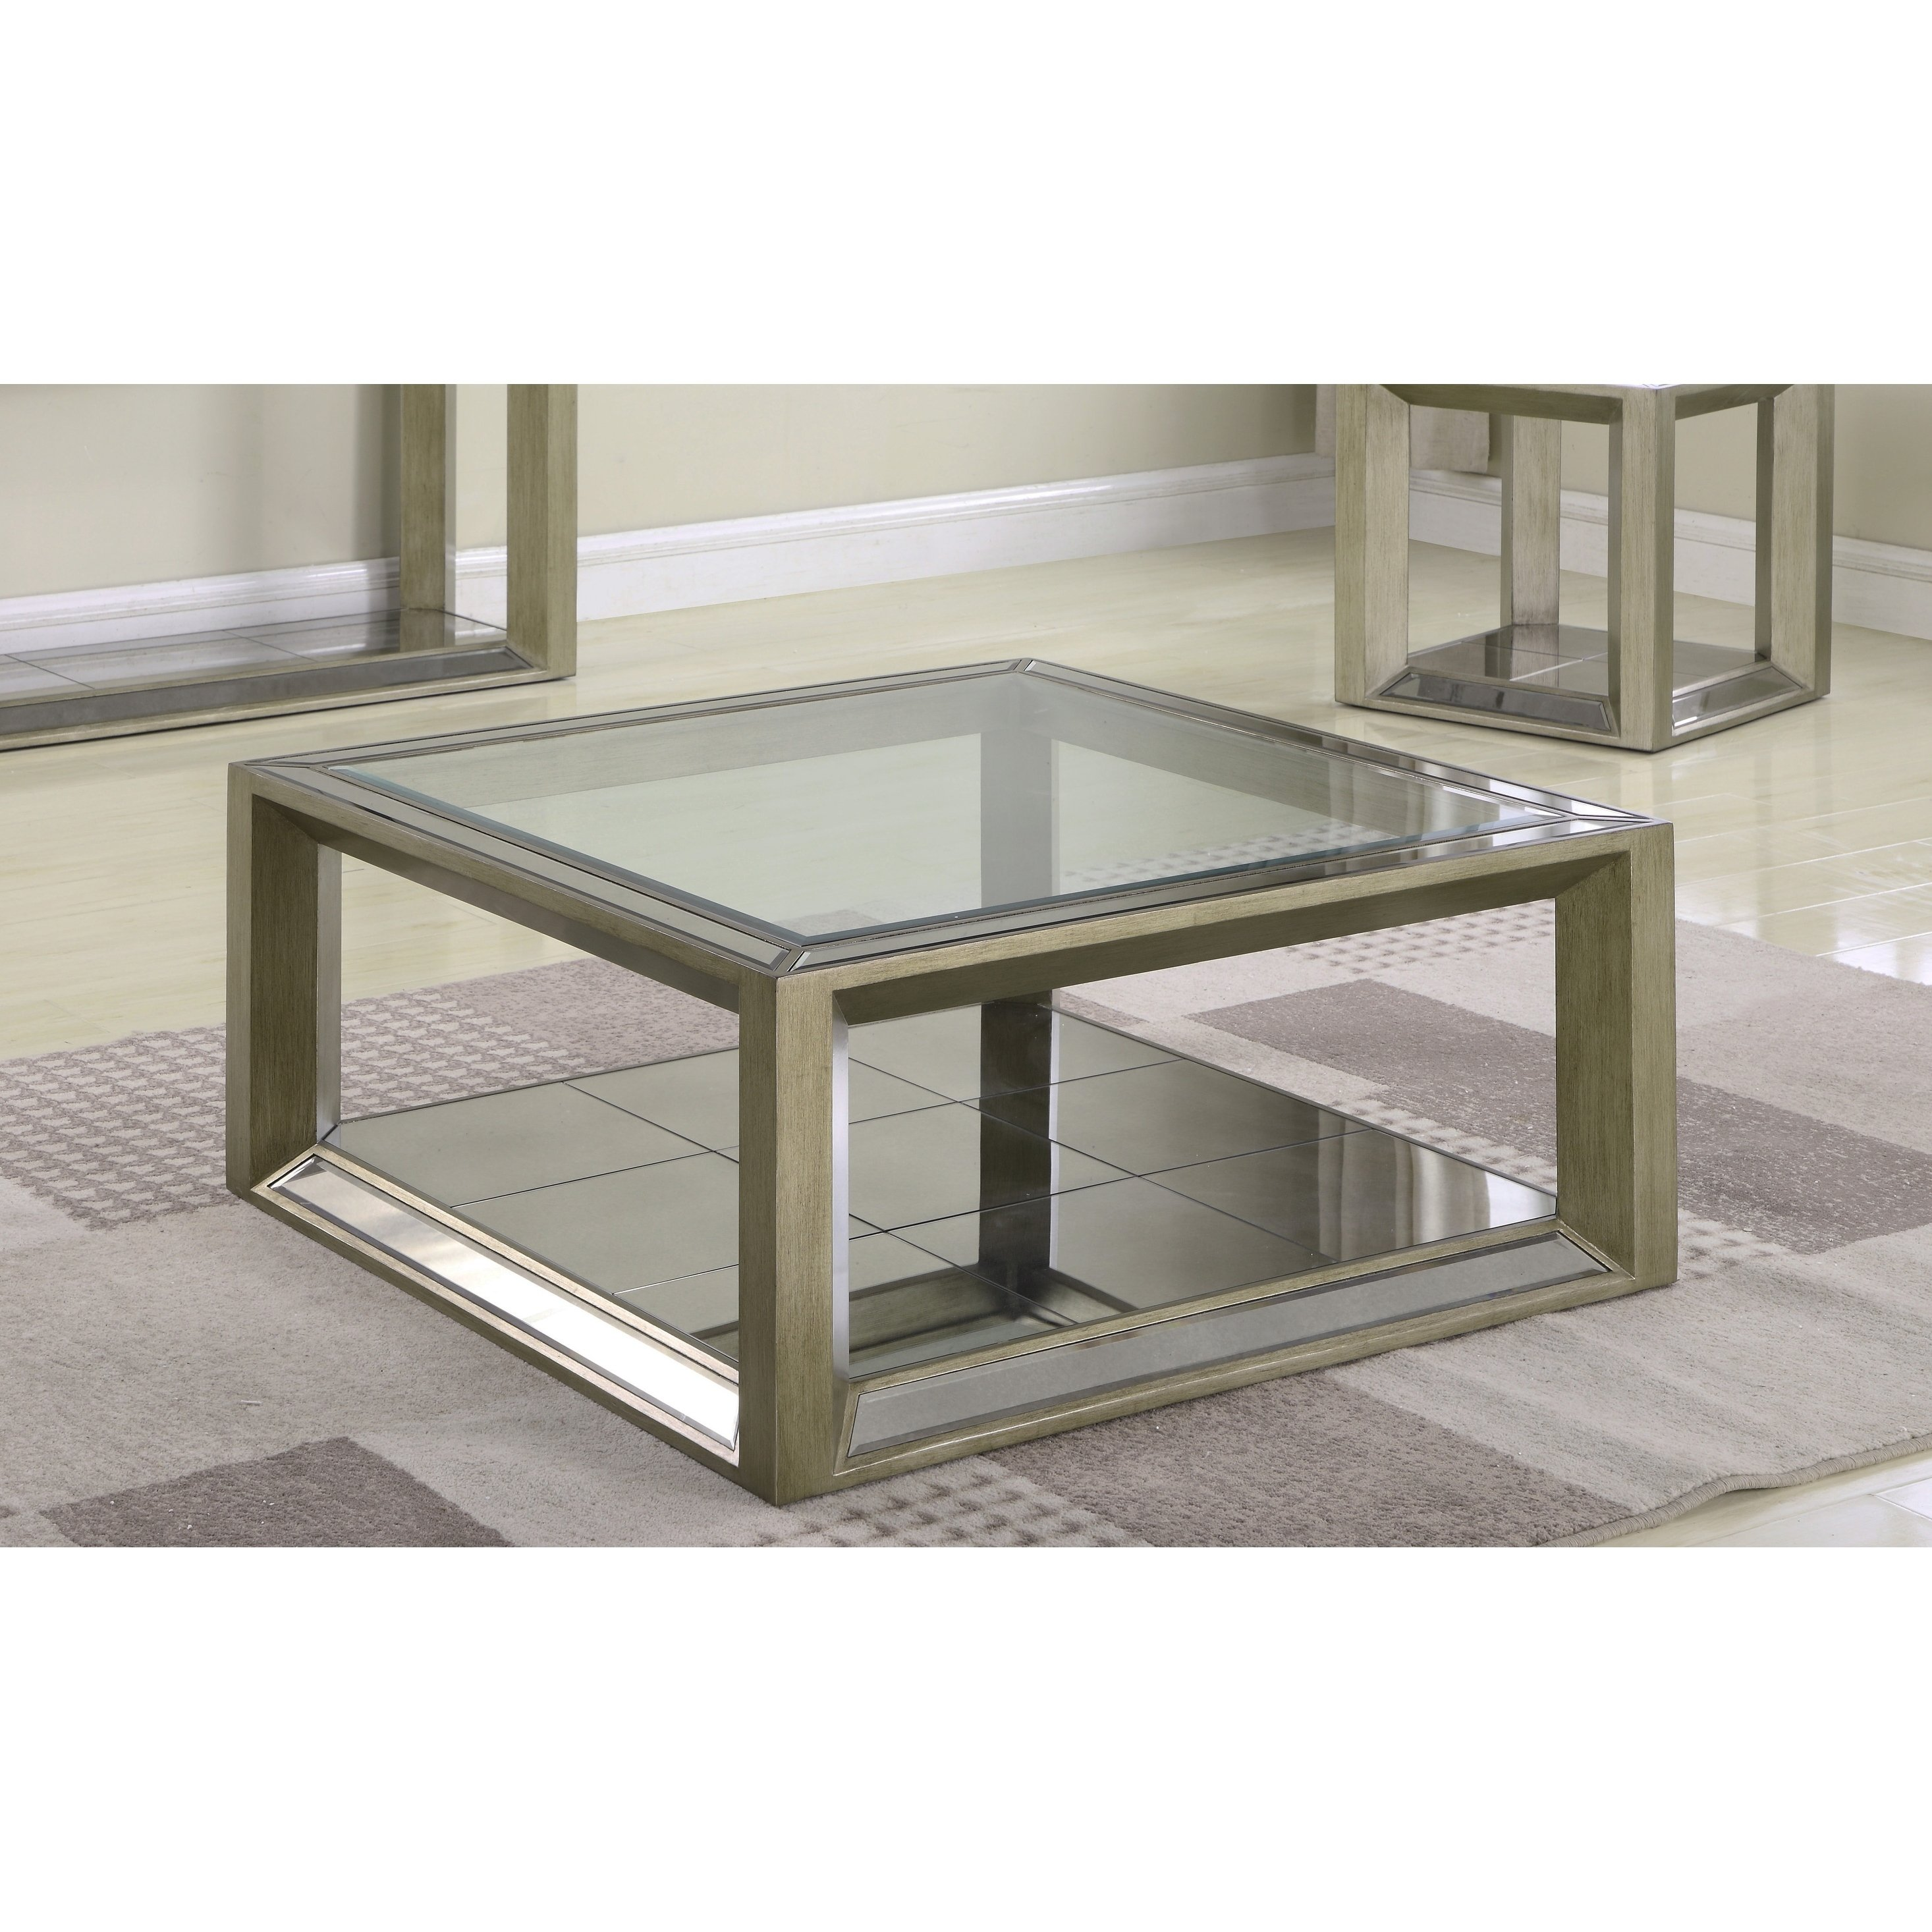 Overstock Com Online Shopping Bedding Furniture Electronics Jewelry Clothing More Coffee Table Mirrored Coffee Tables Coffee Table With Storage [ 2933 x 2933 Pixel ]